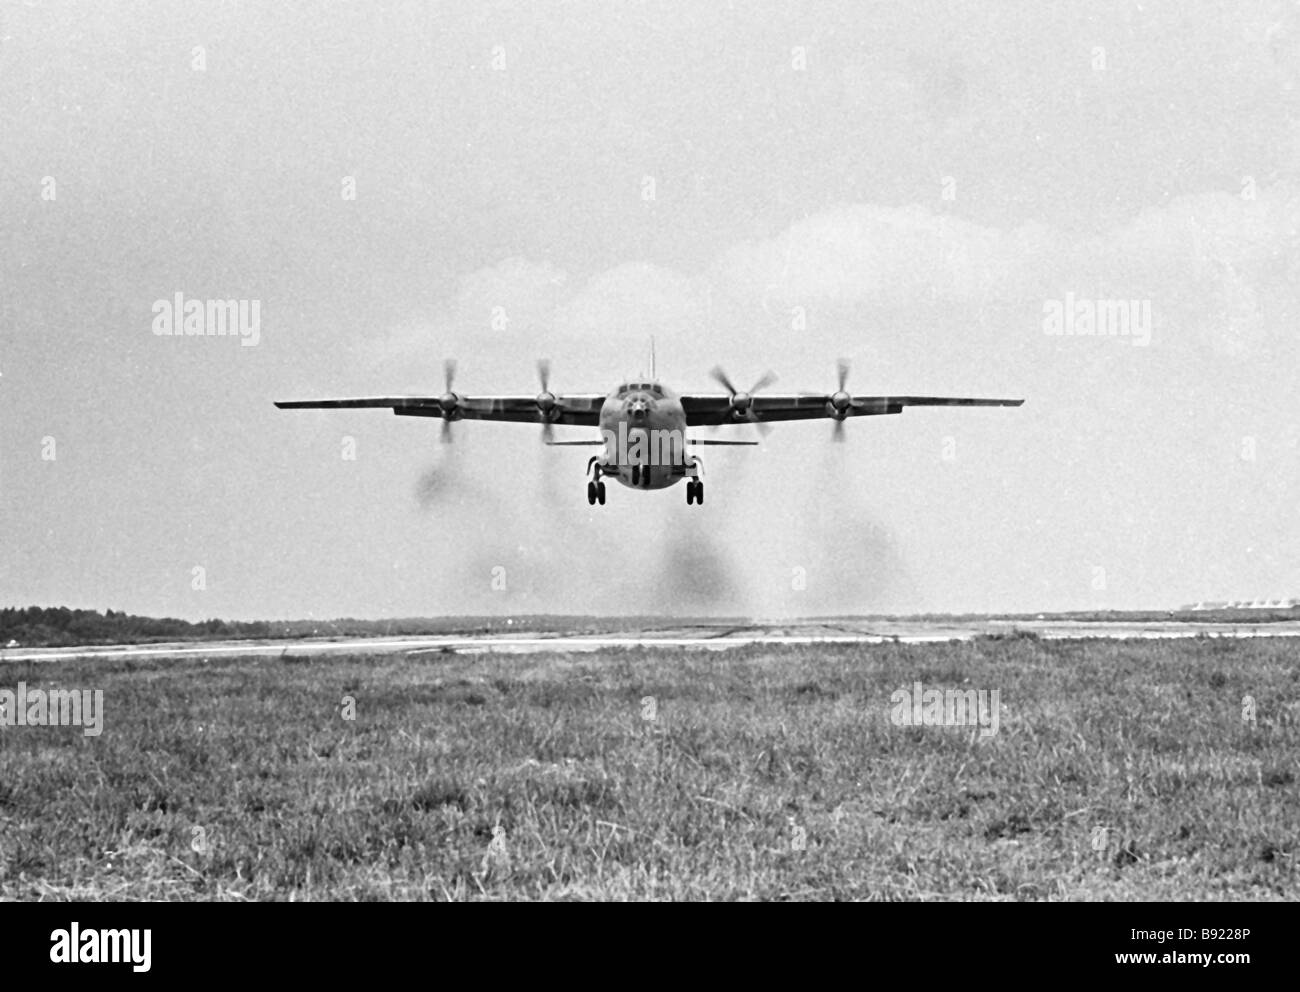 The AN 12 Cub a military transport turboprop aircraft - Stock Image